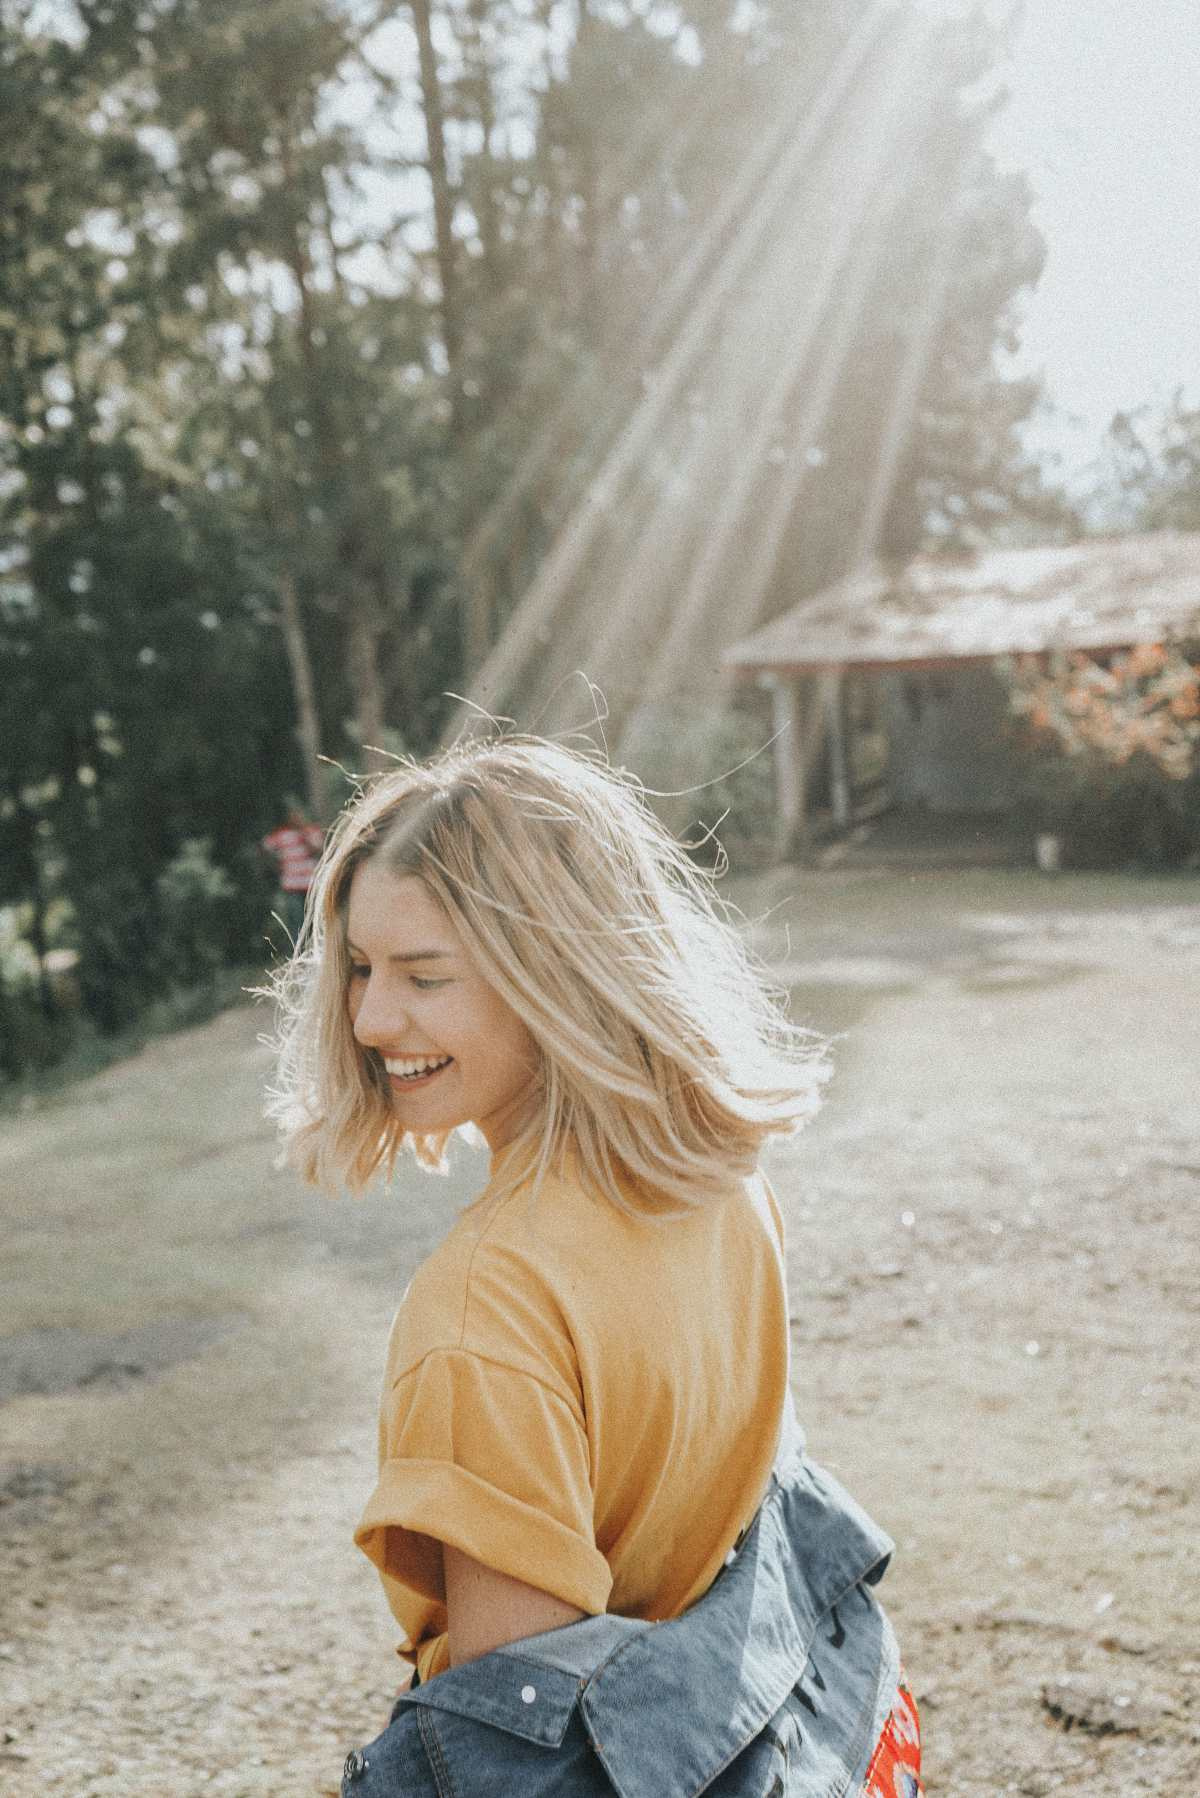 Girl smiling and twirling in the sun